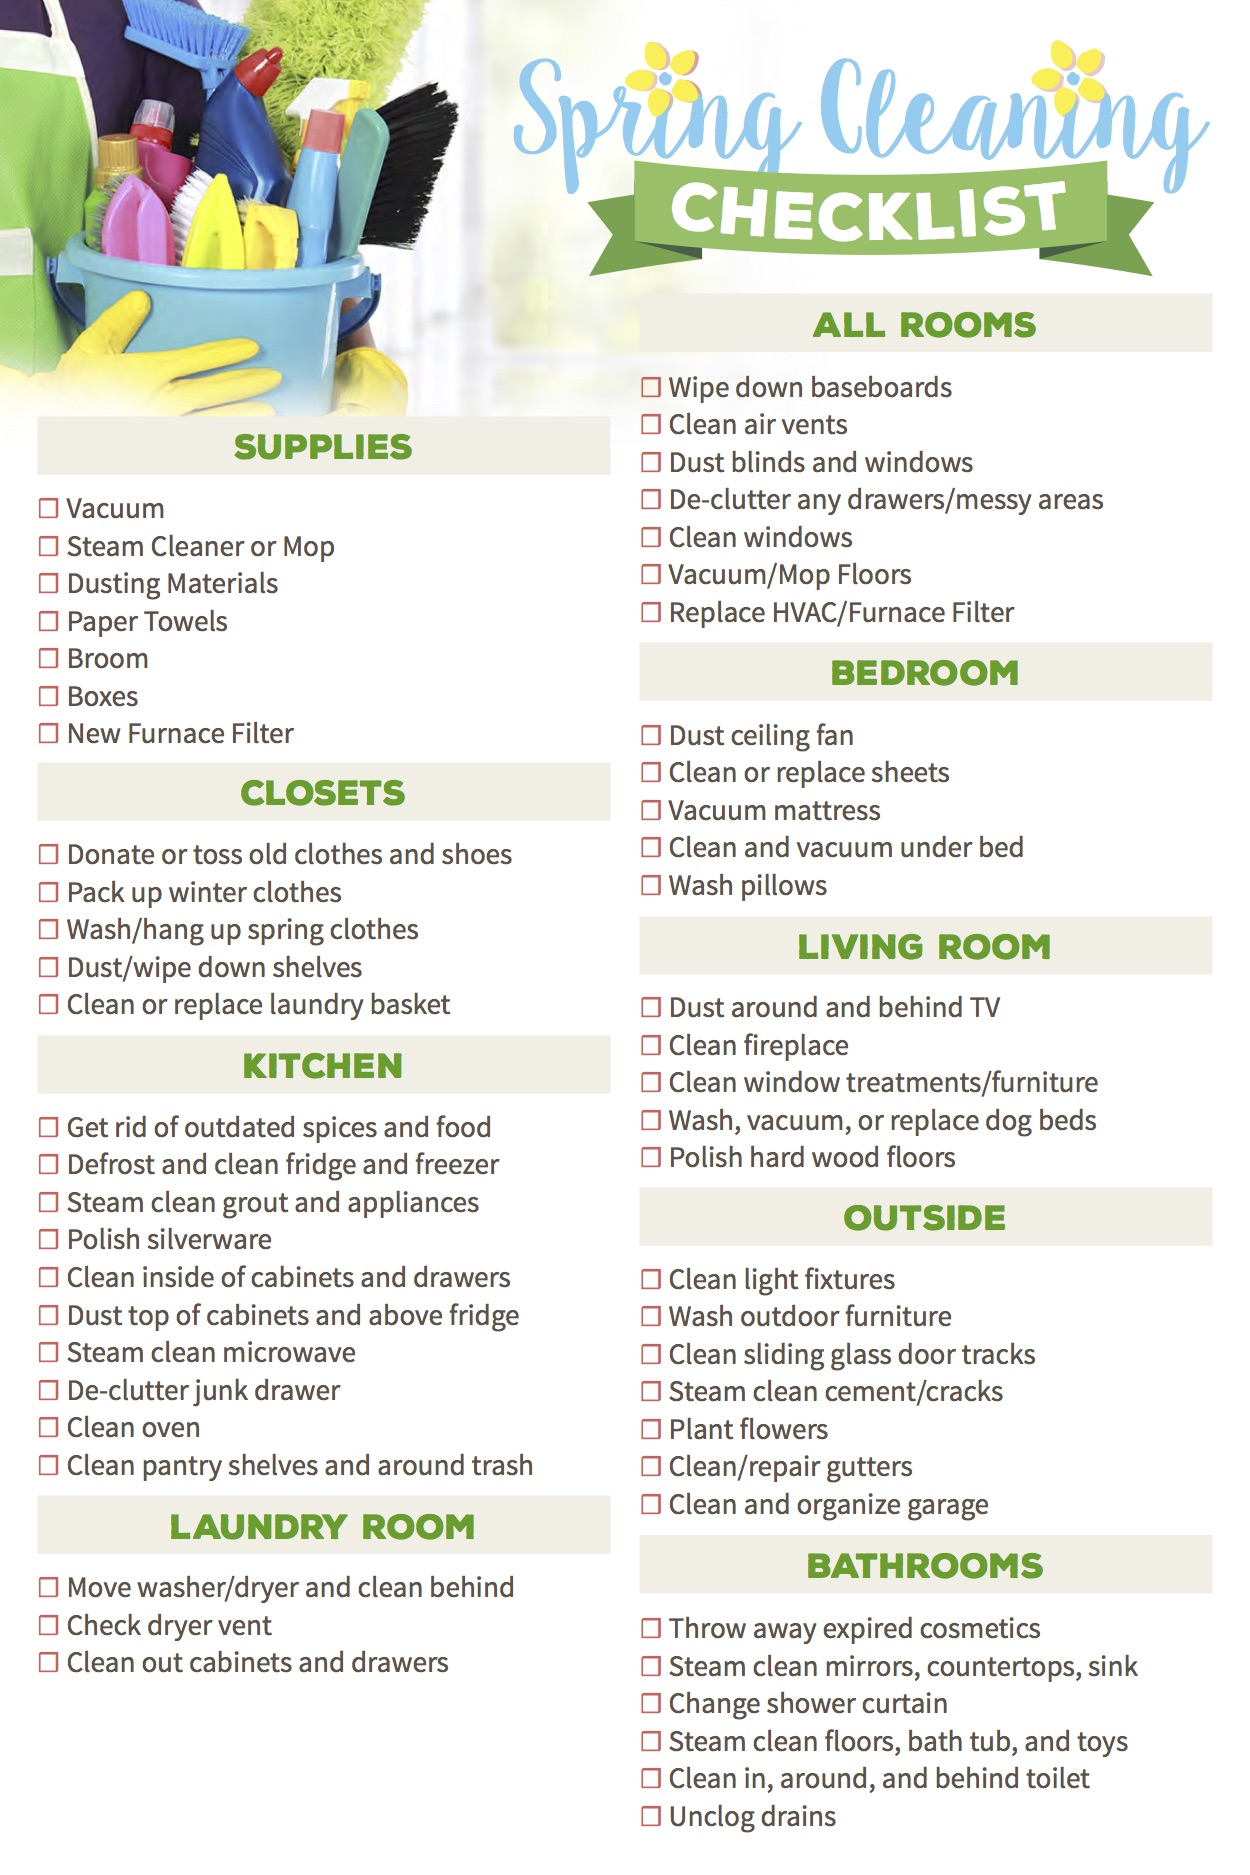 photo relating to Spring Cleaning Checklist Printable identify Final 10 Spring Cleansing Ideas Insider secrets for 2019 Sylvane